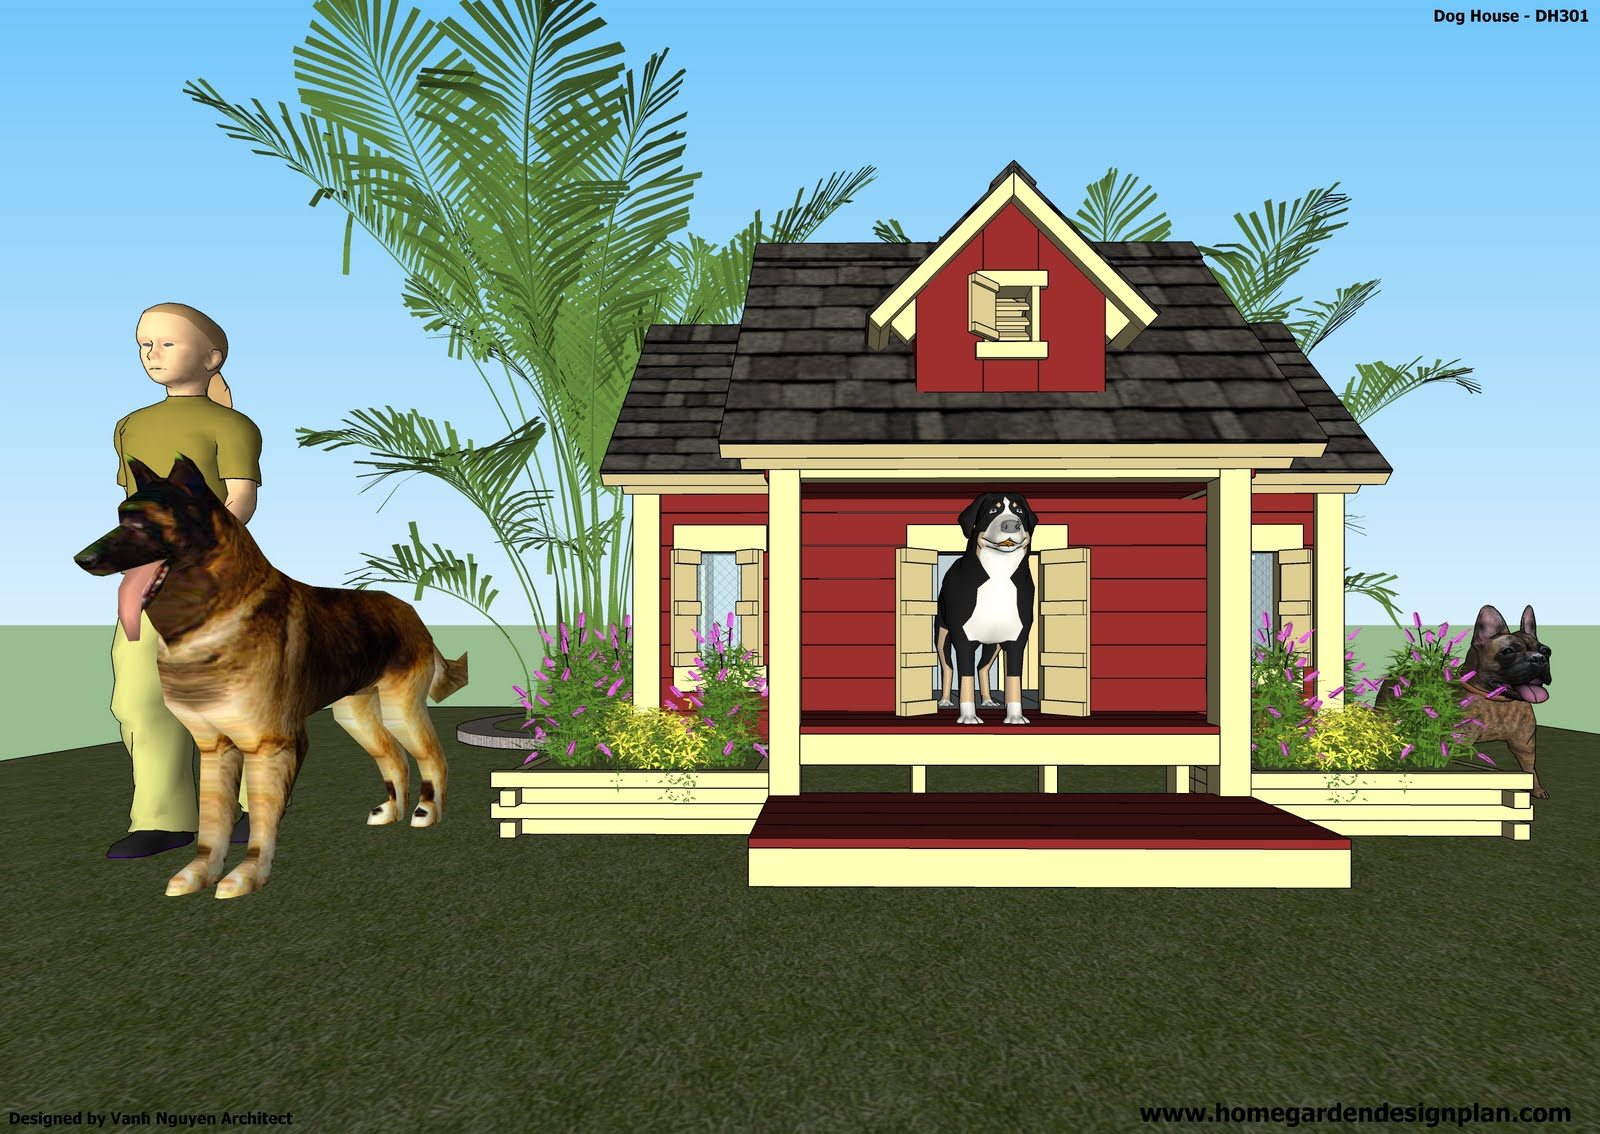 Home garden plans dh301 dog house plans how to build an insulated dog house free dog - Dog house images free ...